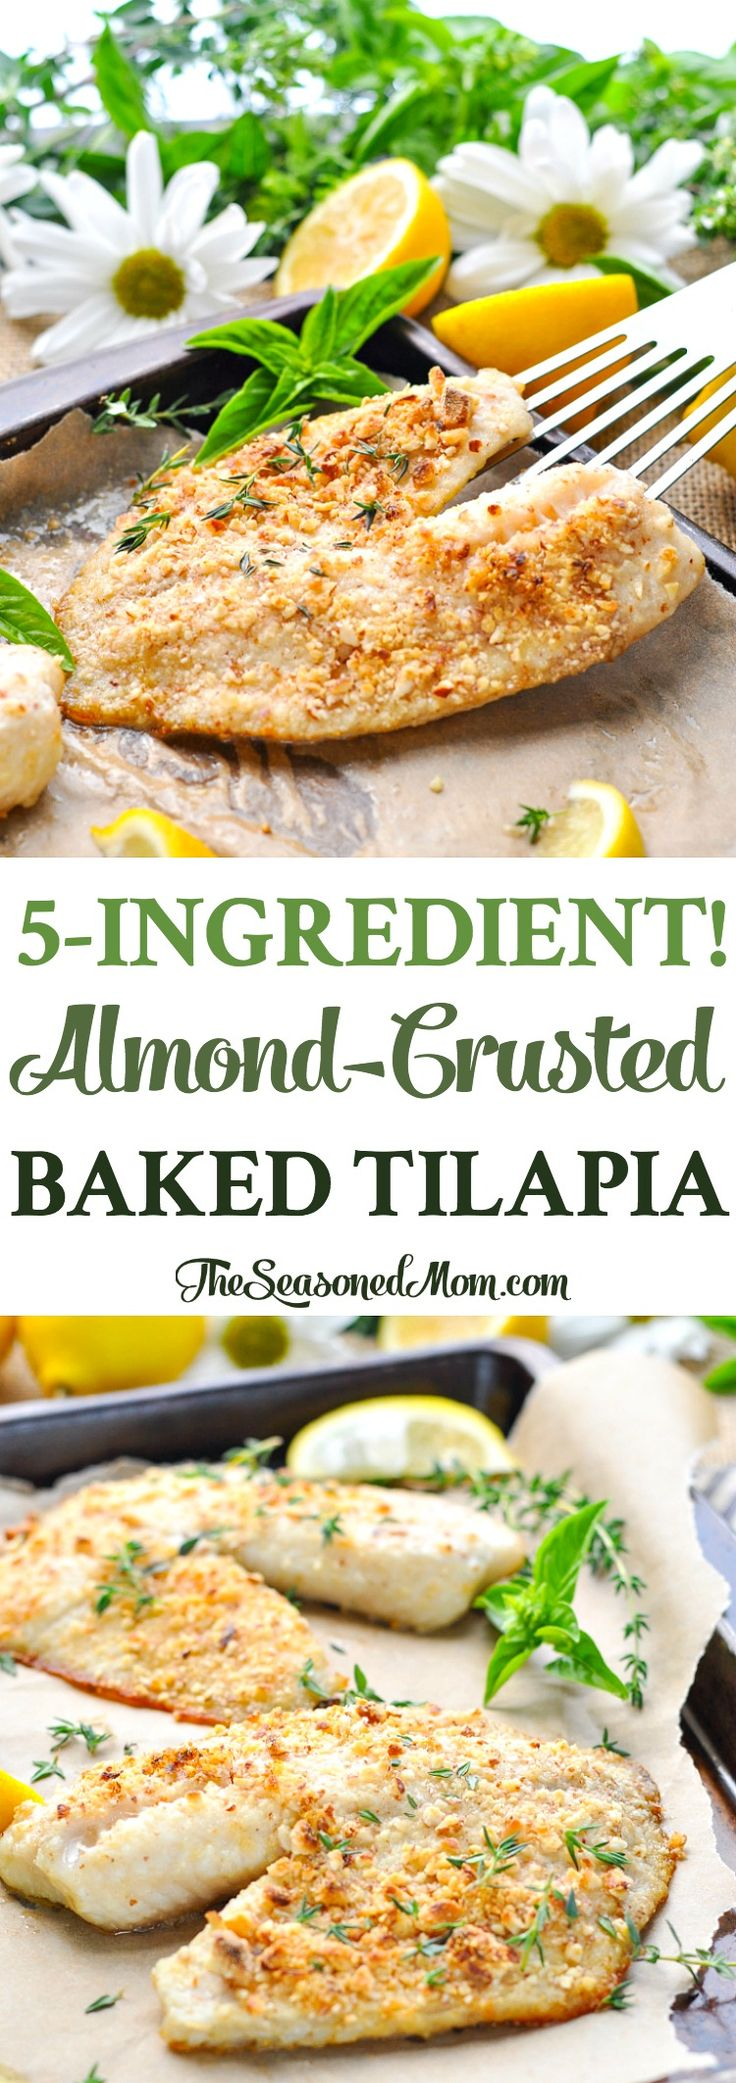 5-Ingredient Almond-Crusted Baked Tilapia is a healthy, easy, low carb dinner recipe with just 5 minutes of prep! Fish Recipes | Low Carb | Easy Dinner Recipes | Healthy Dinner Ideas